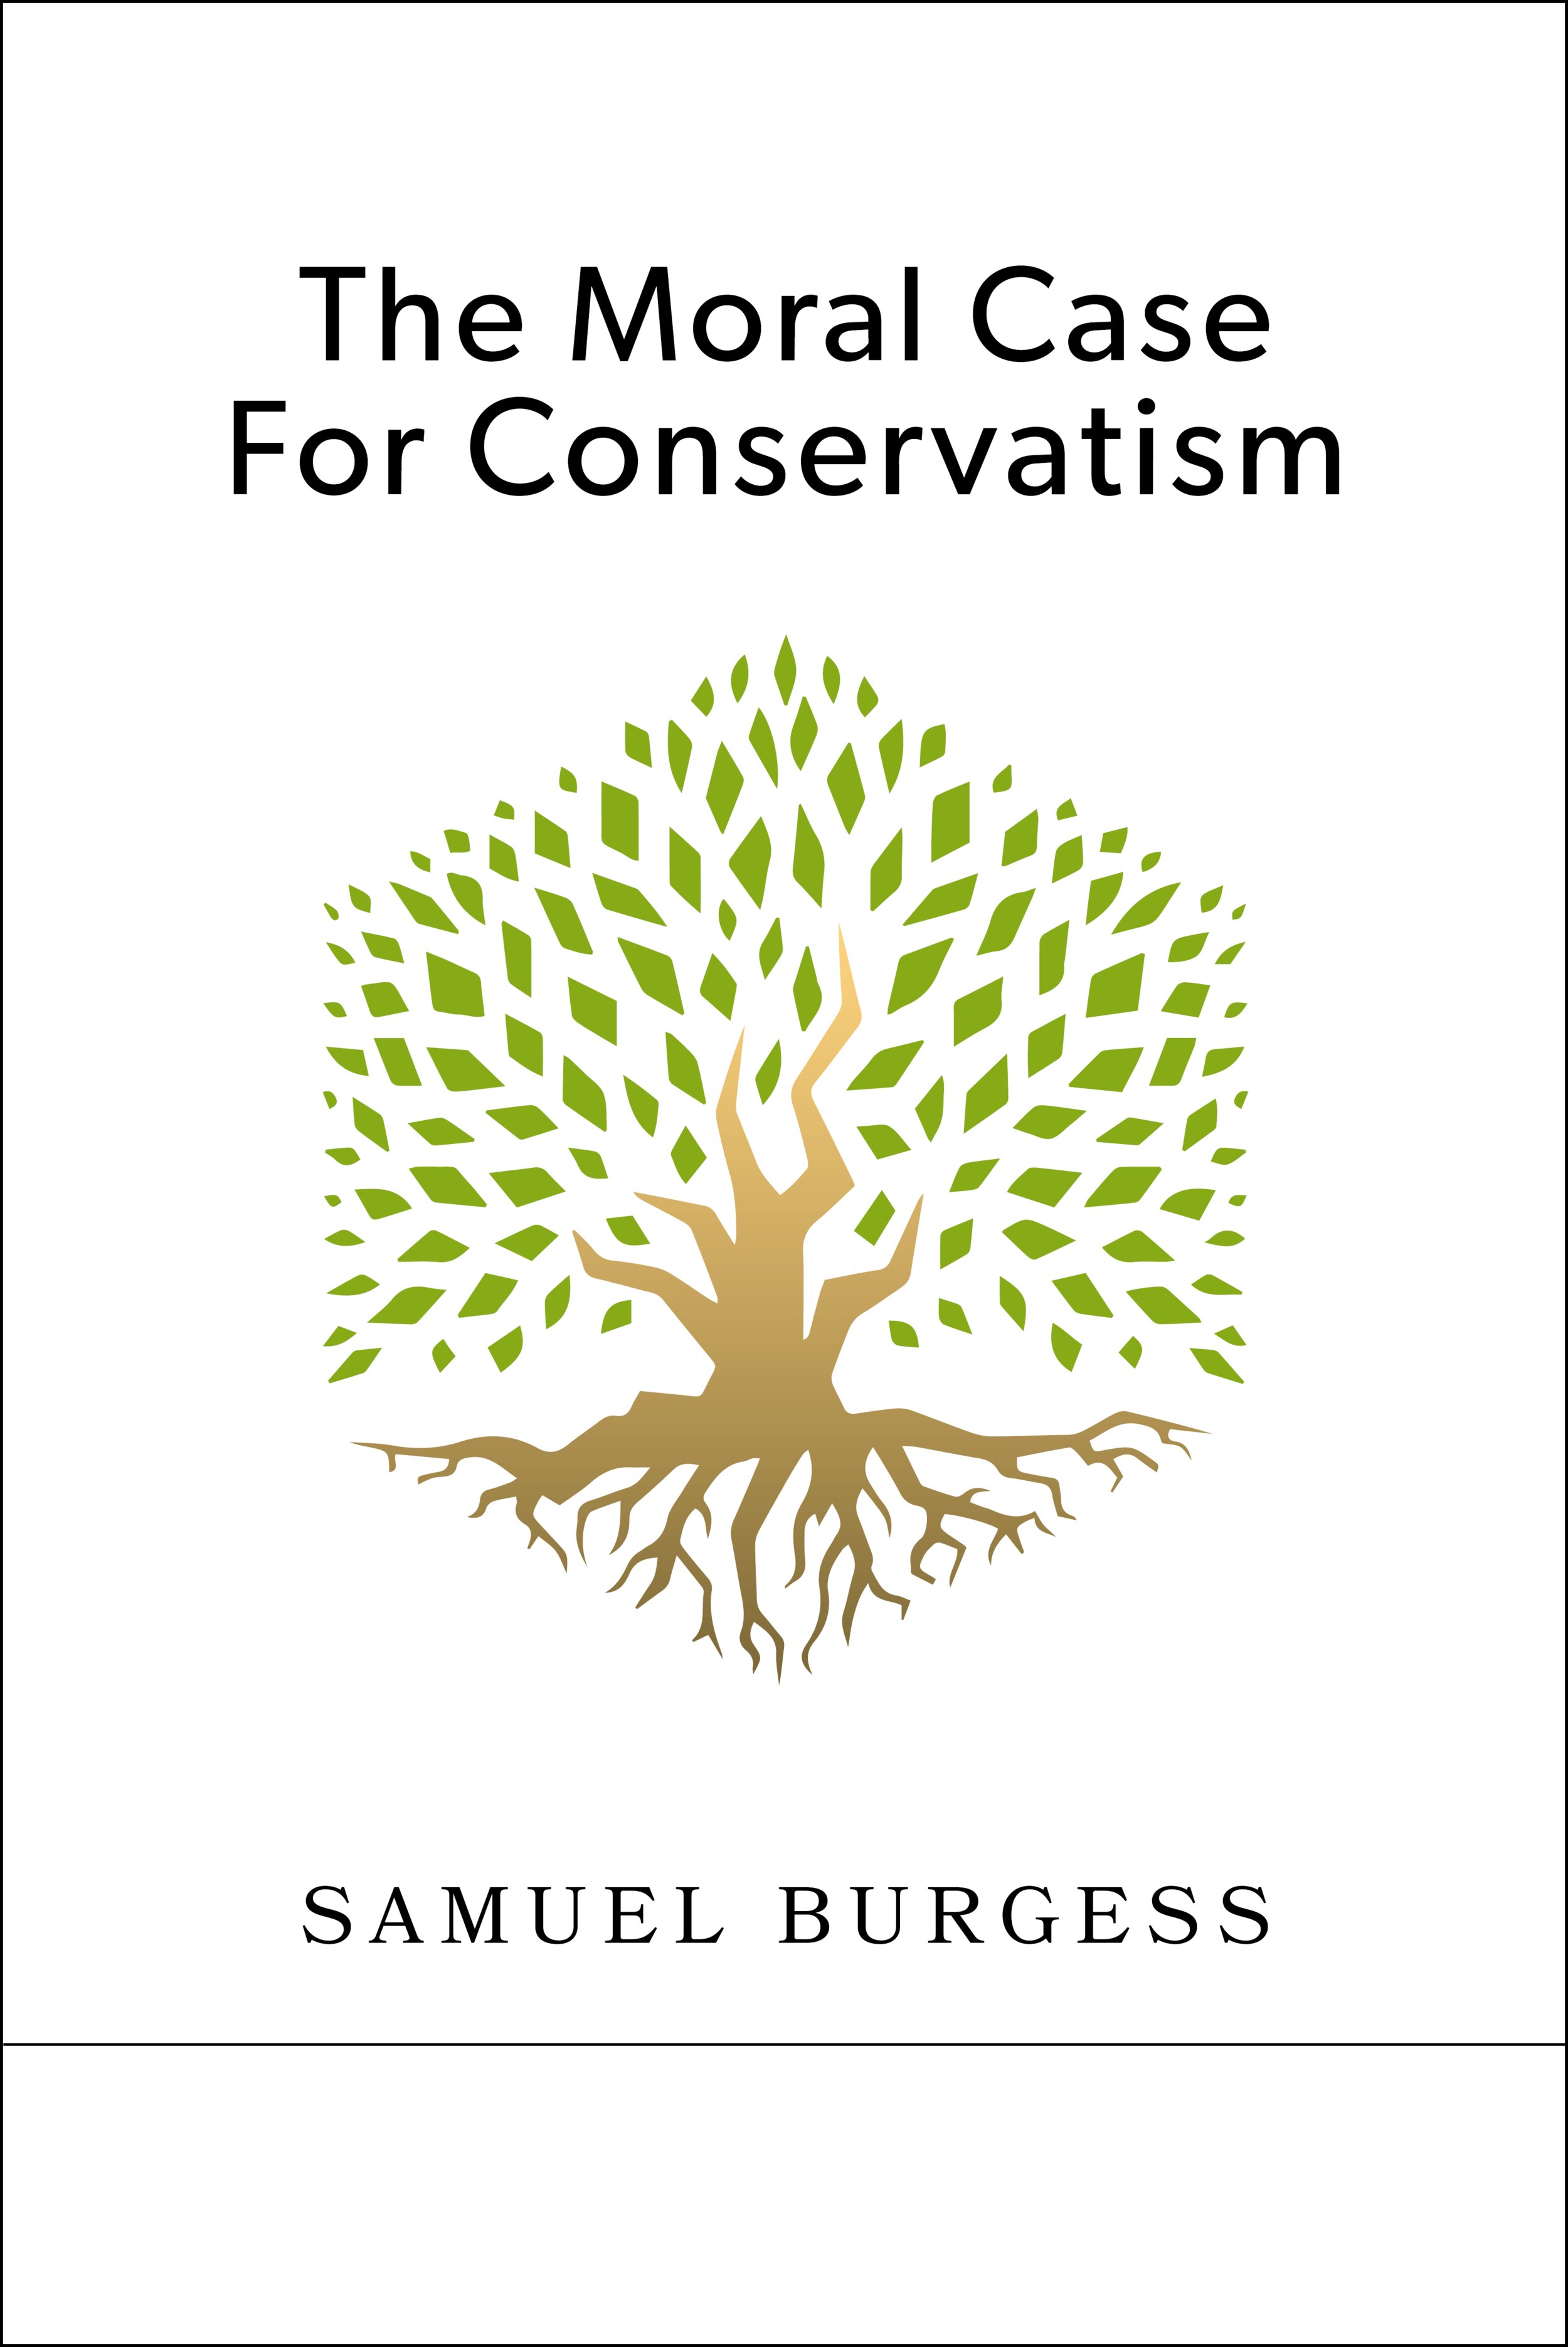 The Moral Case For Conservatism - Shows how a conservative philosophy underpinned by Christian belief can be good for society